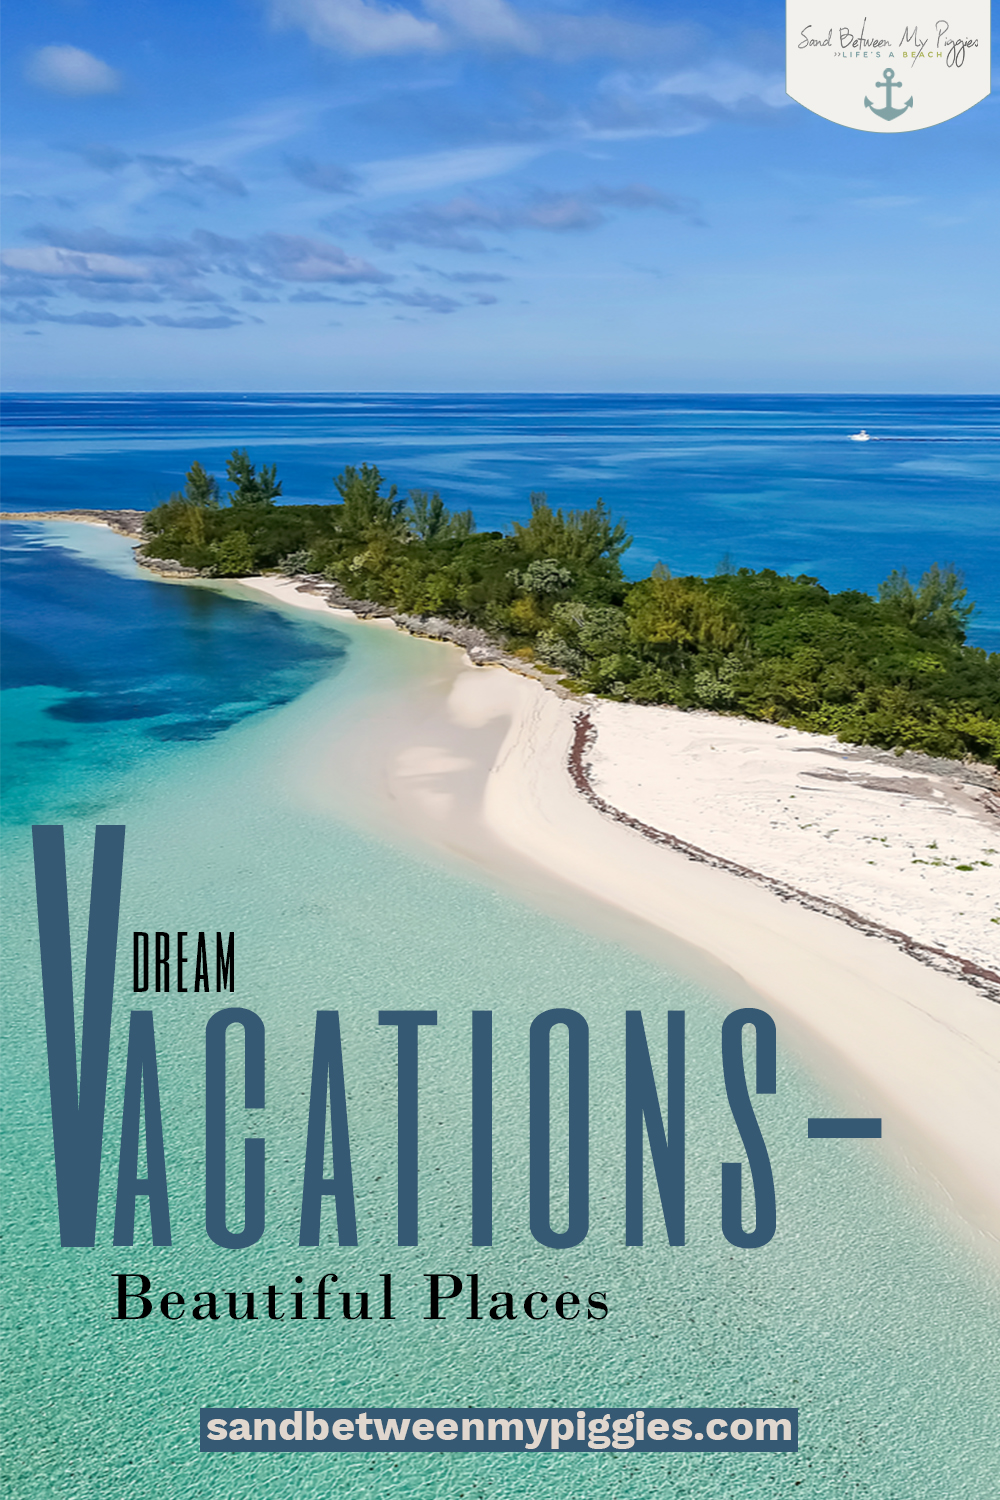 Summer is here and it's time to start traveling. Add these beautiful places to your lists of dream vacations to the tropics. After a trip to any one of these five islands, you'll never want to go home. #sandbetweenmypiggiesblog #dreamvacations #beautifulplaces